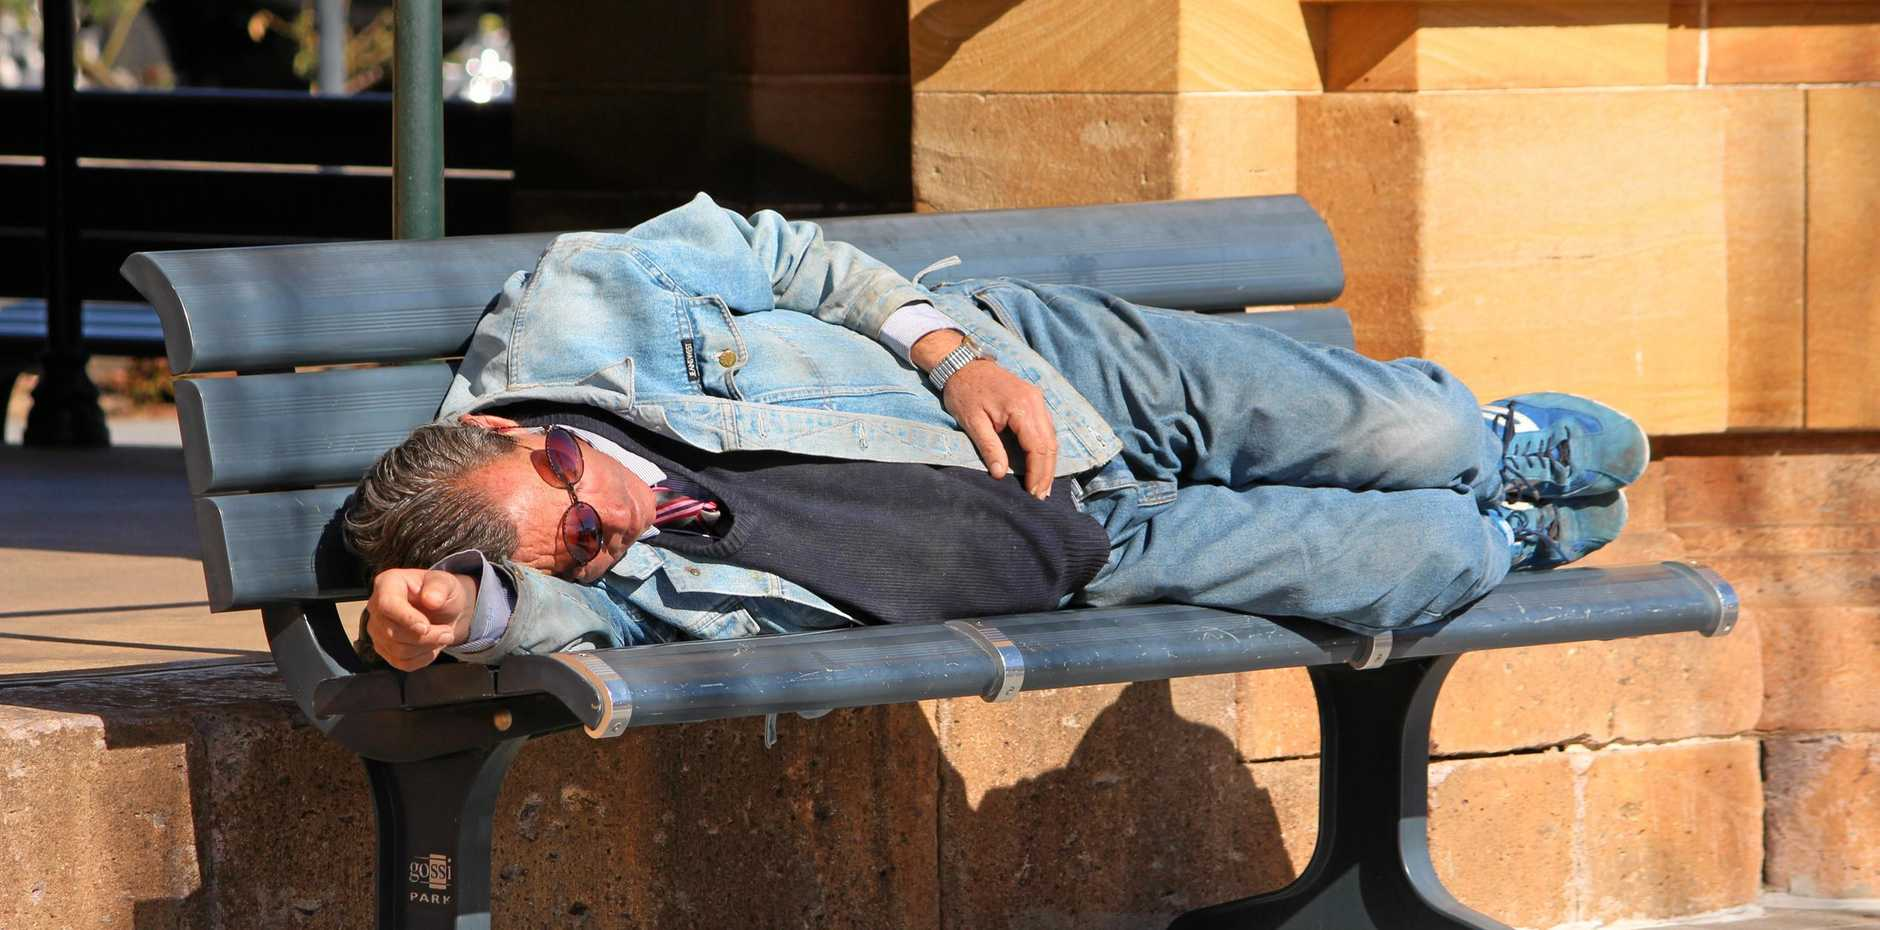 A man sleeps rough on bench outside the post office in the Warwick CBD. Homelessness and the housing shortage are issues that are affecting a number of people in the Southern Downs community.